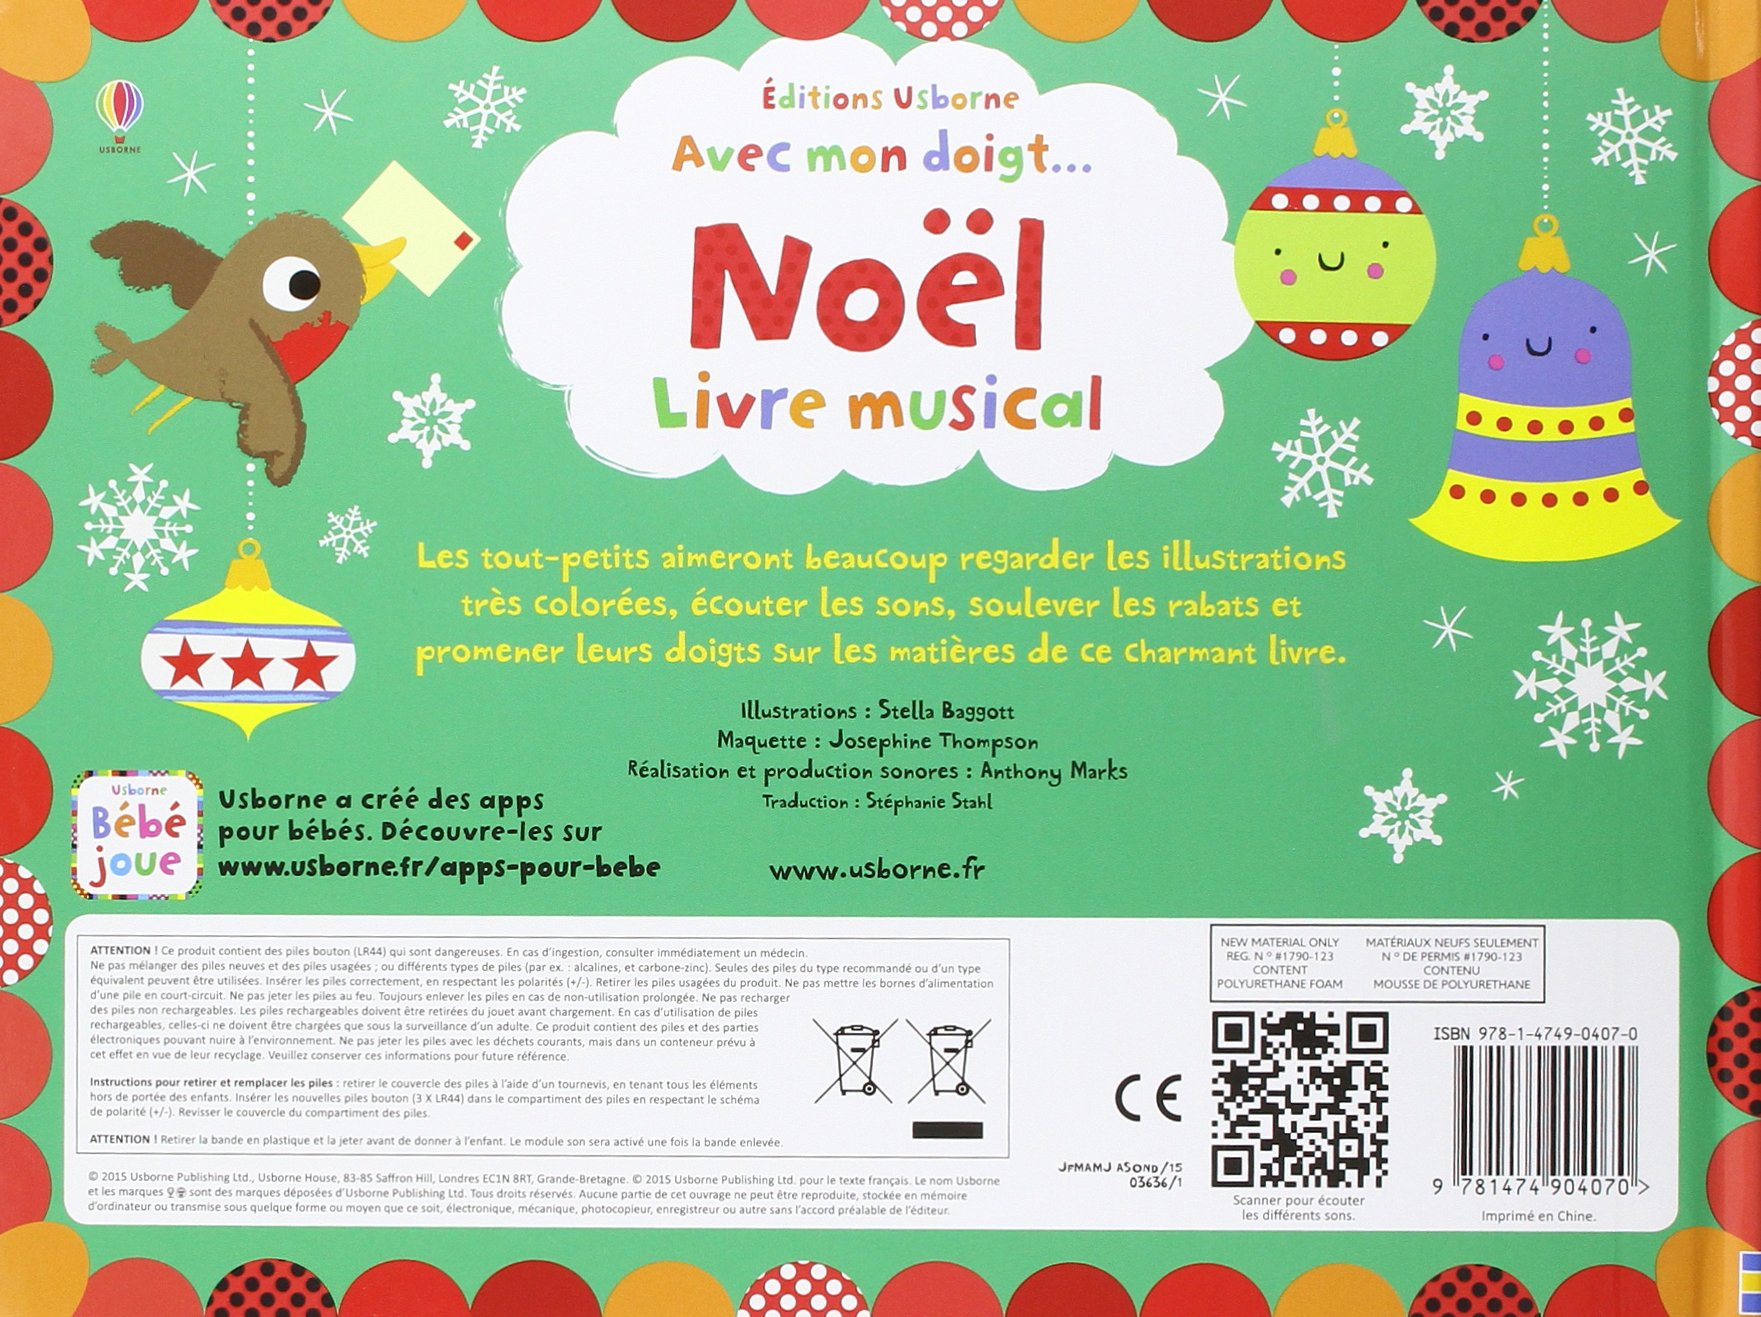 Noel Livre Musical 9781474904070 Amazon Com Books